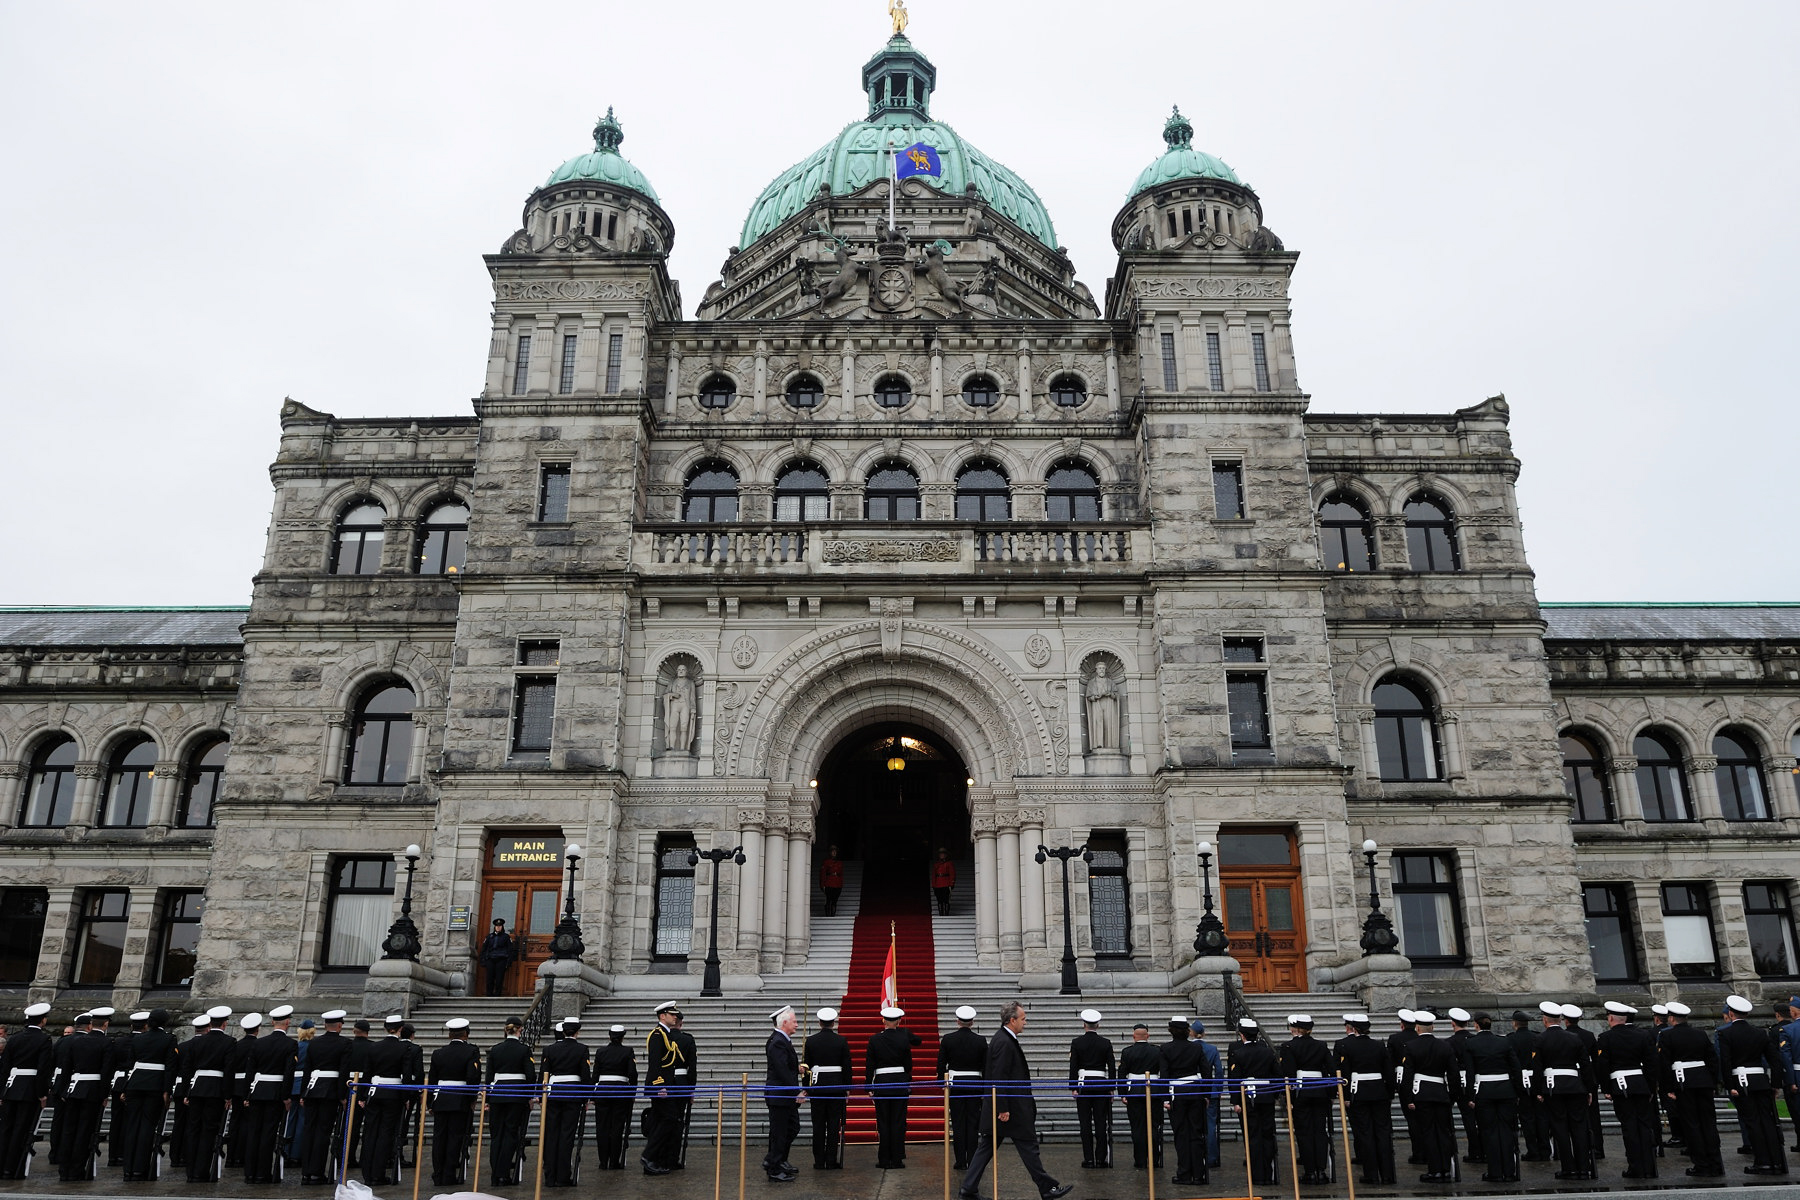 The official visit to British Columbia began in the capital city of Victoria at the Legislative Assembly. The Governor General conducted an inspection of the guard of honour.